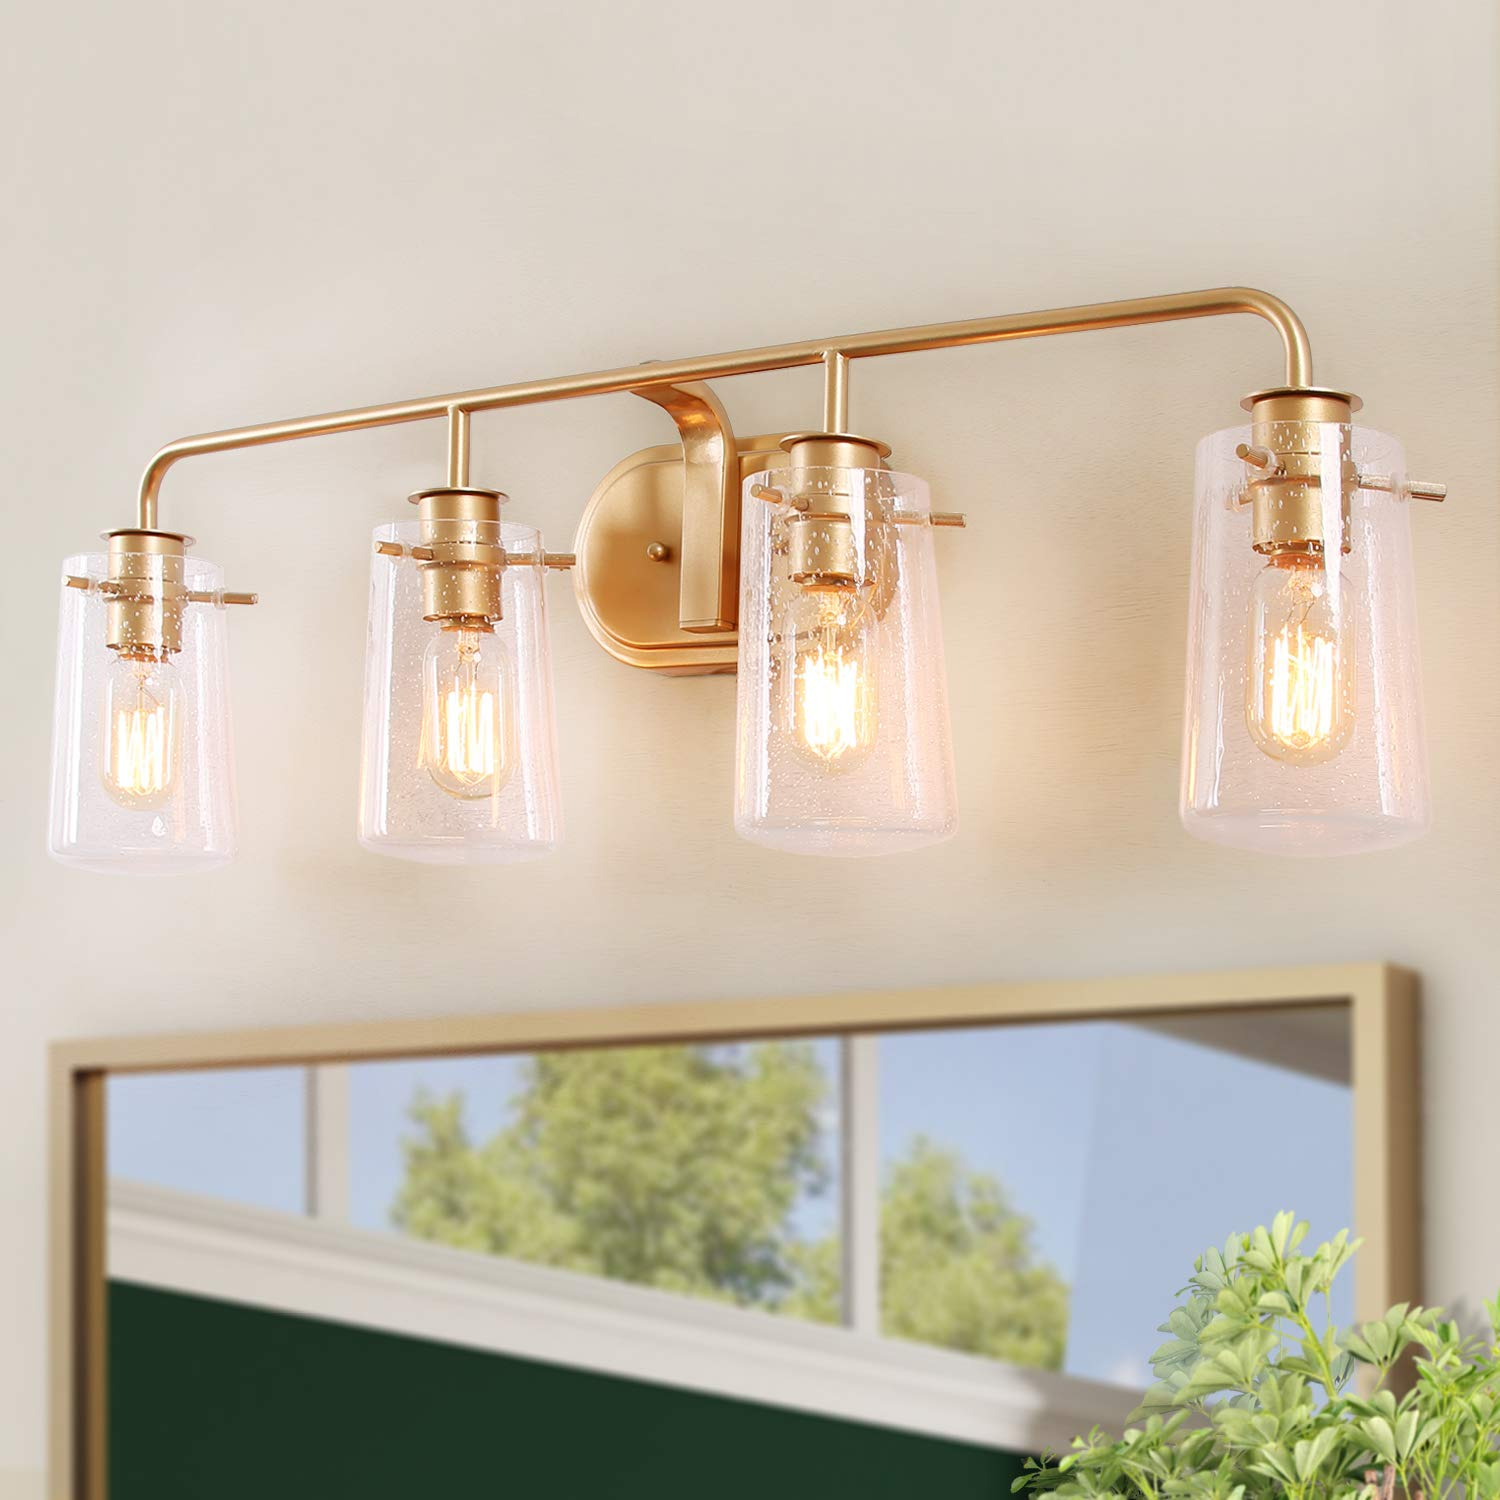 """KSANA Vanity Light, 4-Light Modern Bathroom Lighting in Antique Brass Metal Finish with Clear Bubbled Glass Shades, 31"""" Large Mid-Century Wall Sconce"""